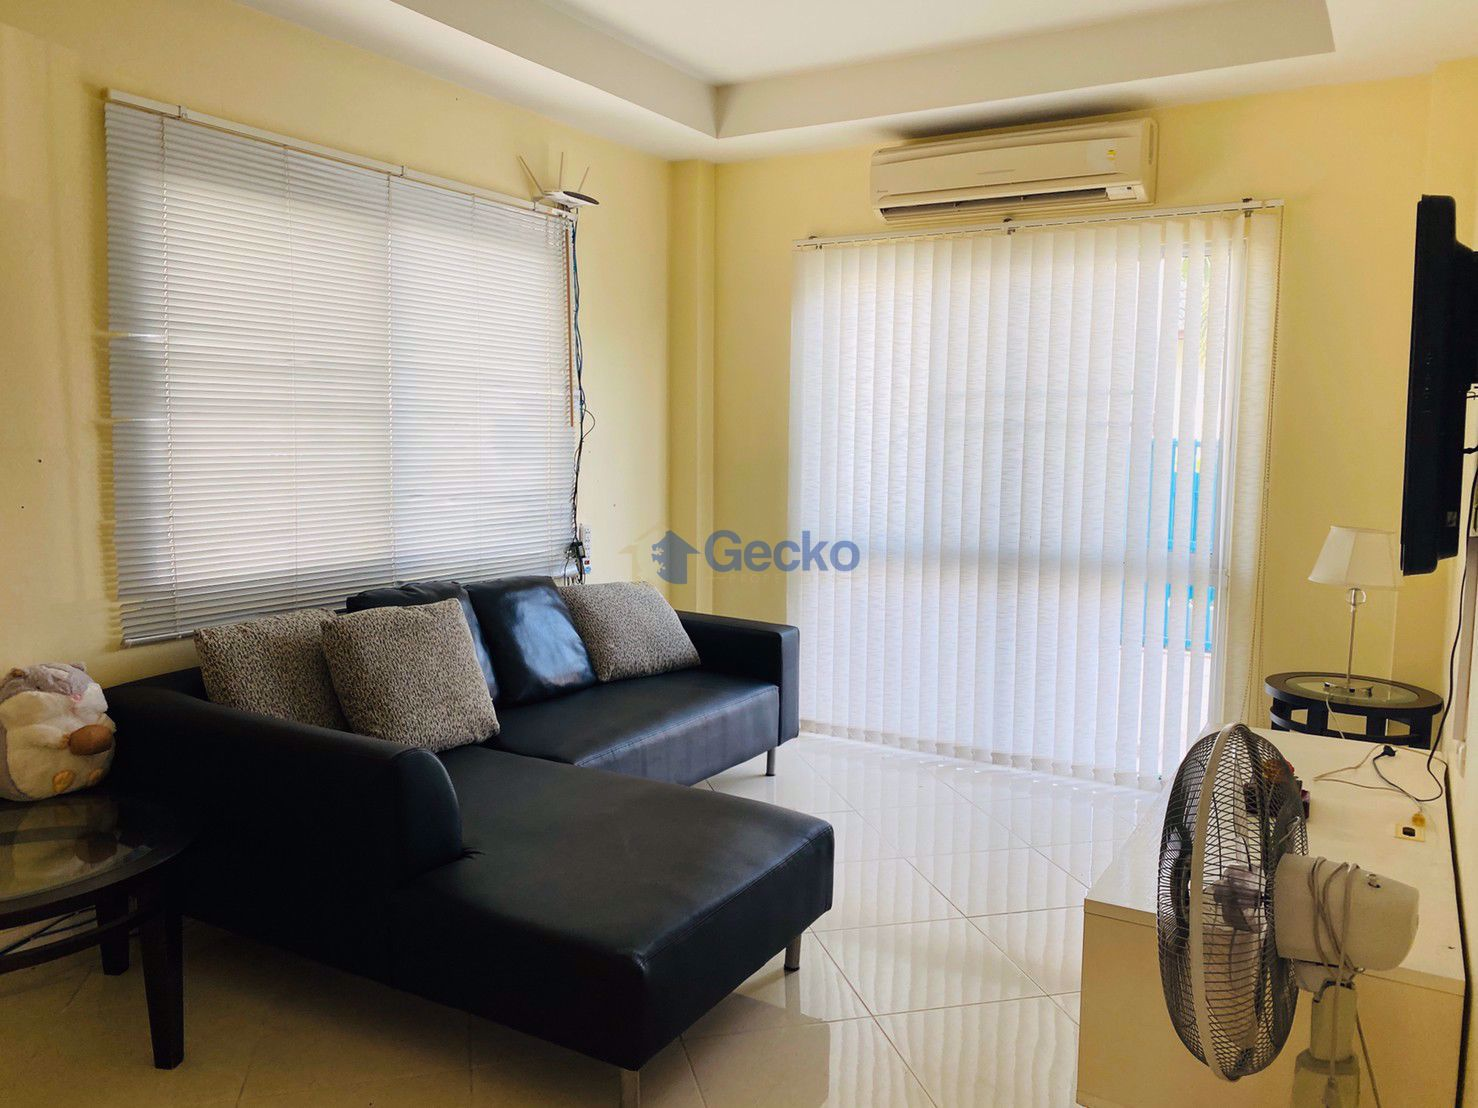 Picture of 3 Bedrooms bed in House in Green Field Villa 3 in East Pattaya H009053